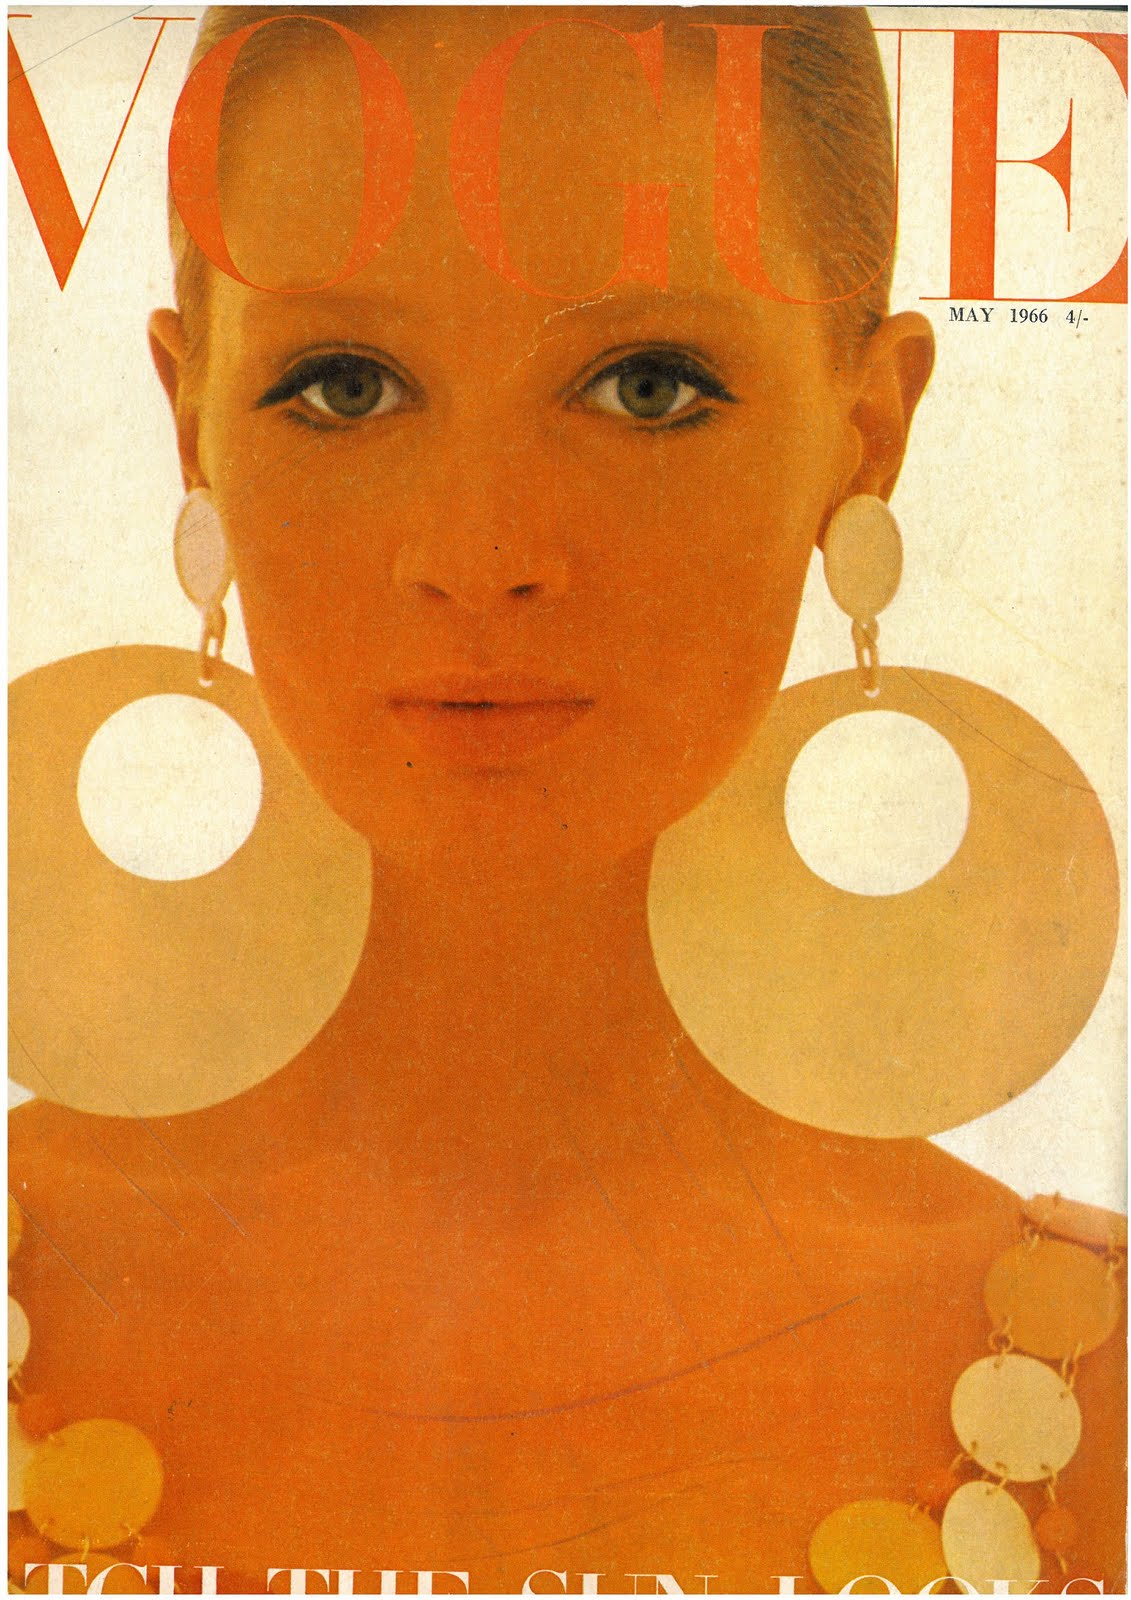 david bailey for vogue in the year 1966